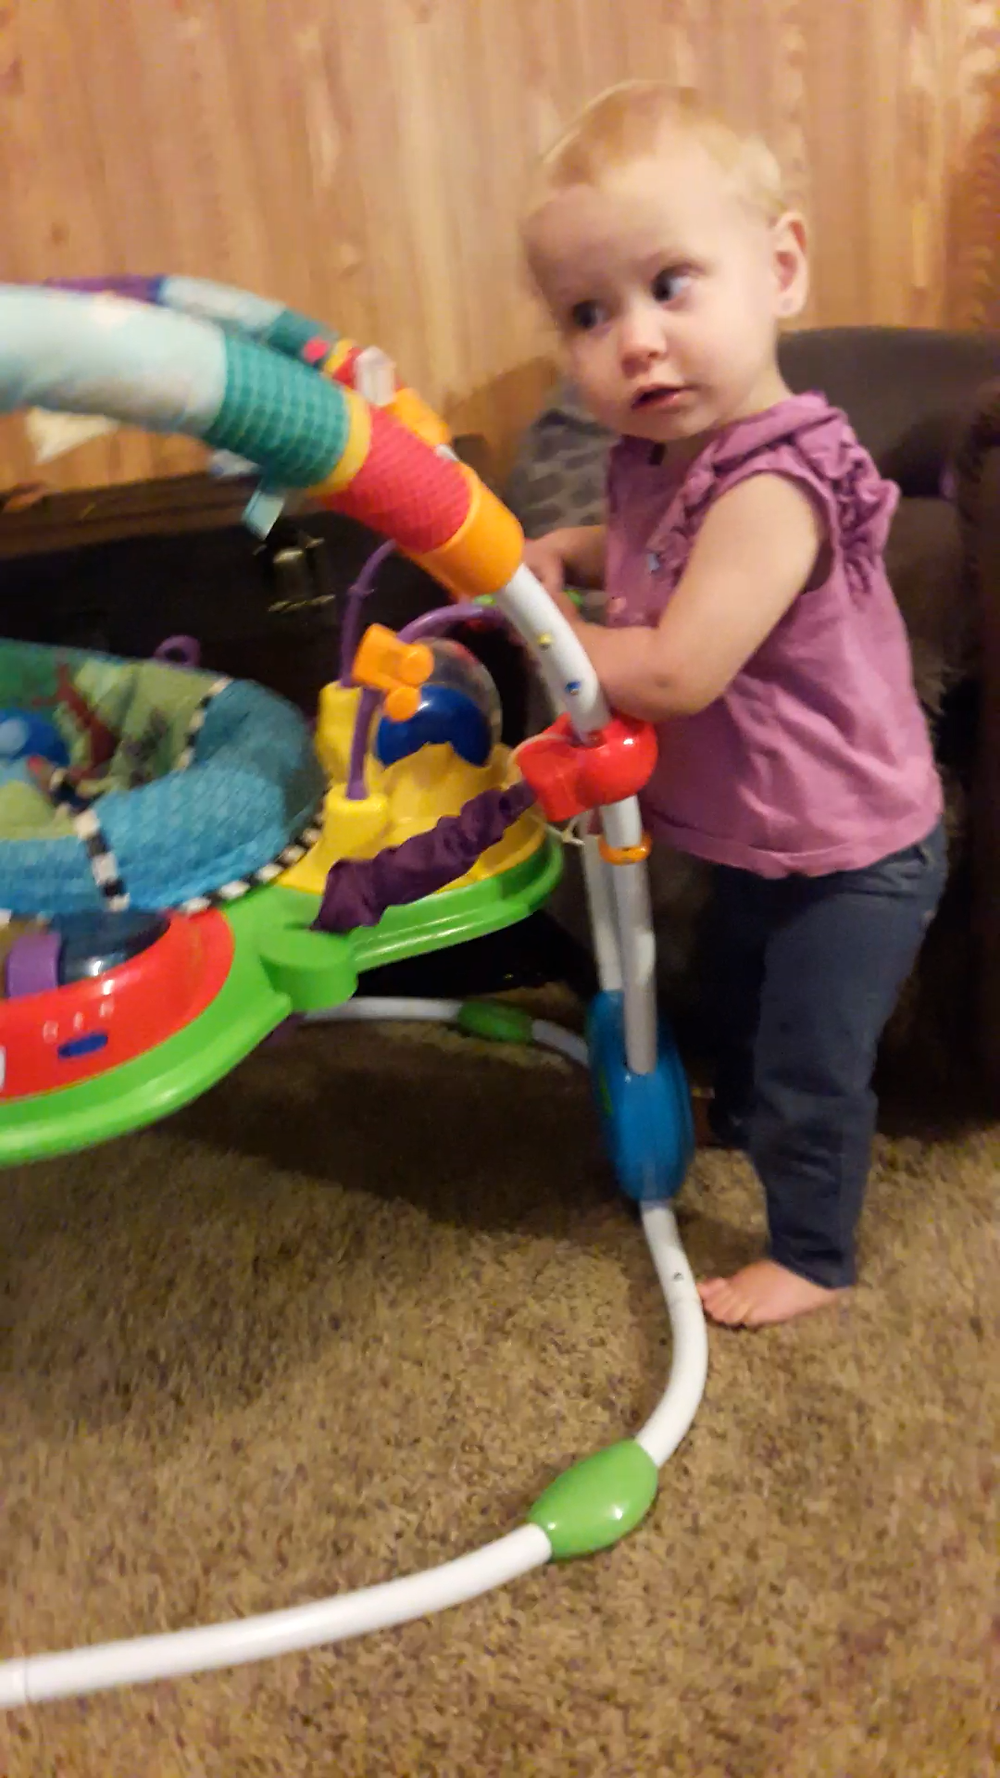 15-month-old girl stands with two hands holding onto a baby toy